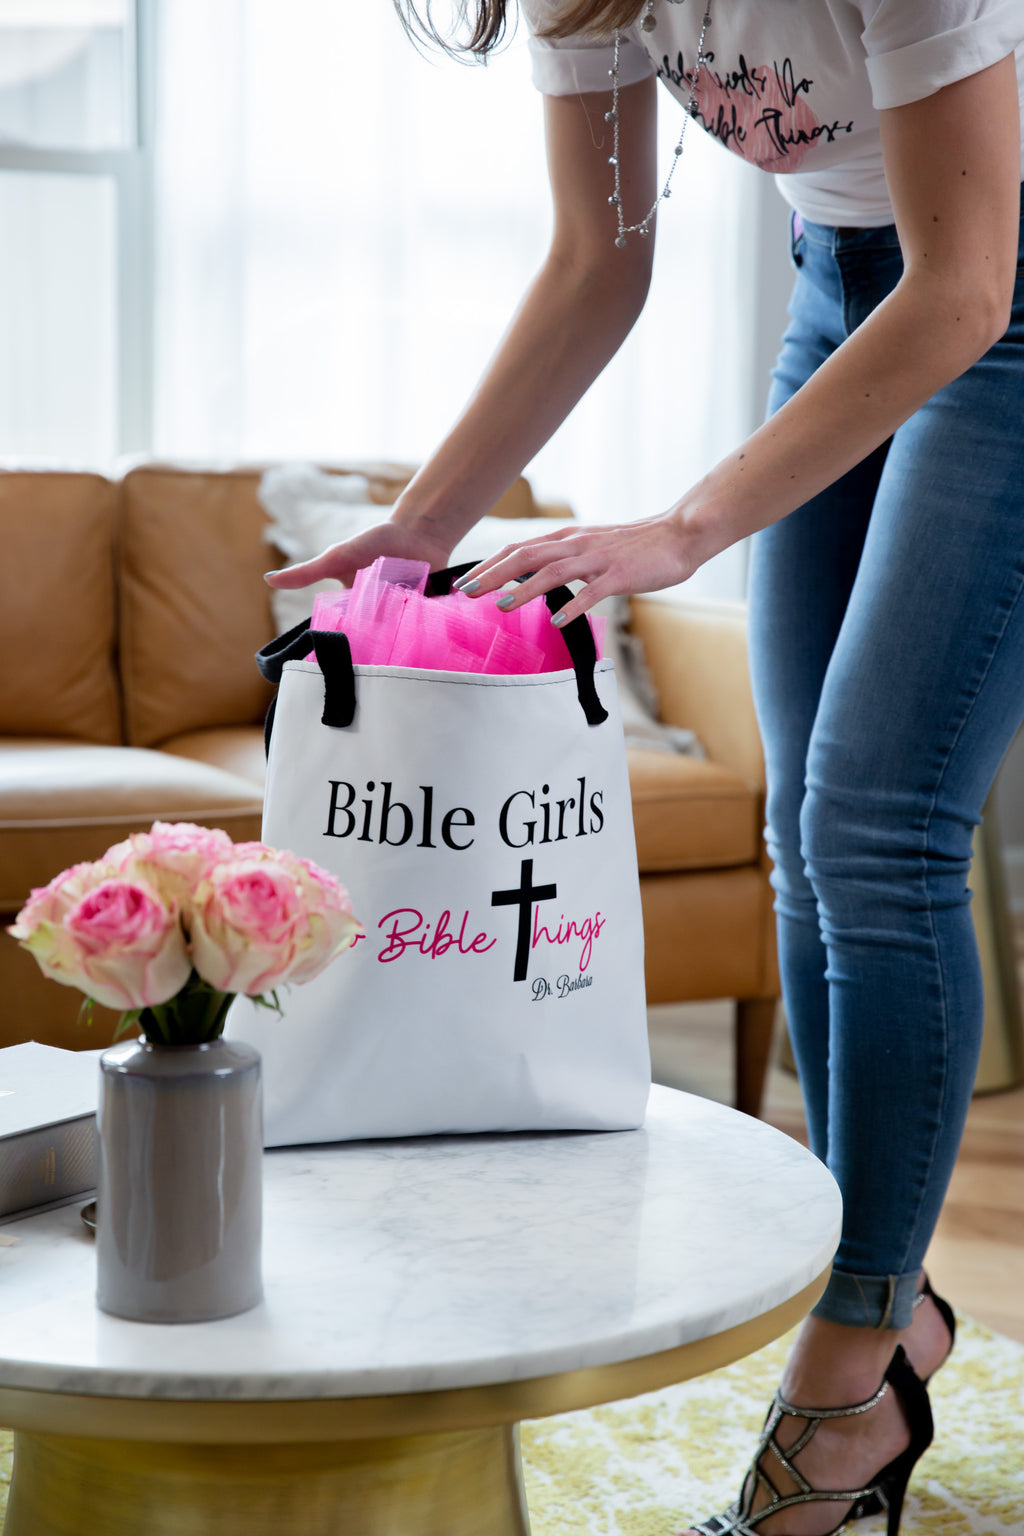 Bible Girls do Bible Things Quiet Time Tote